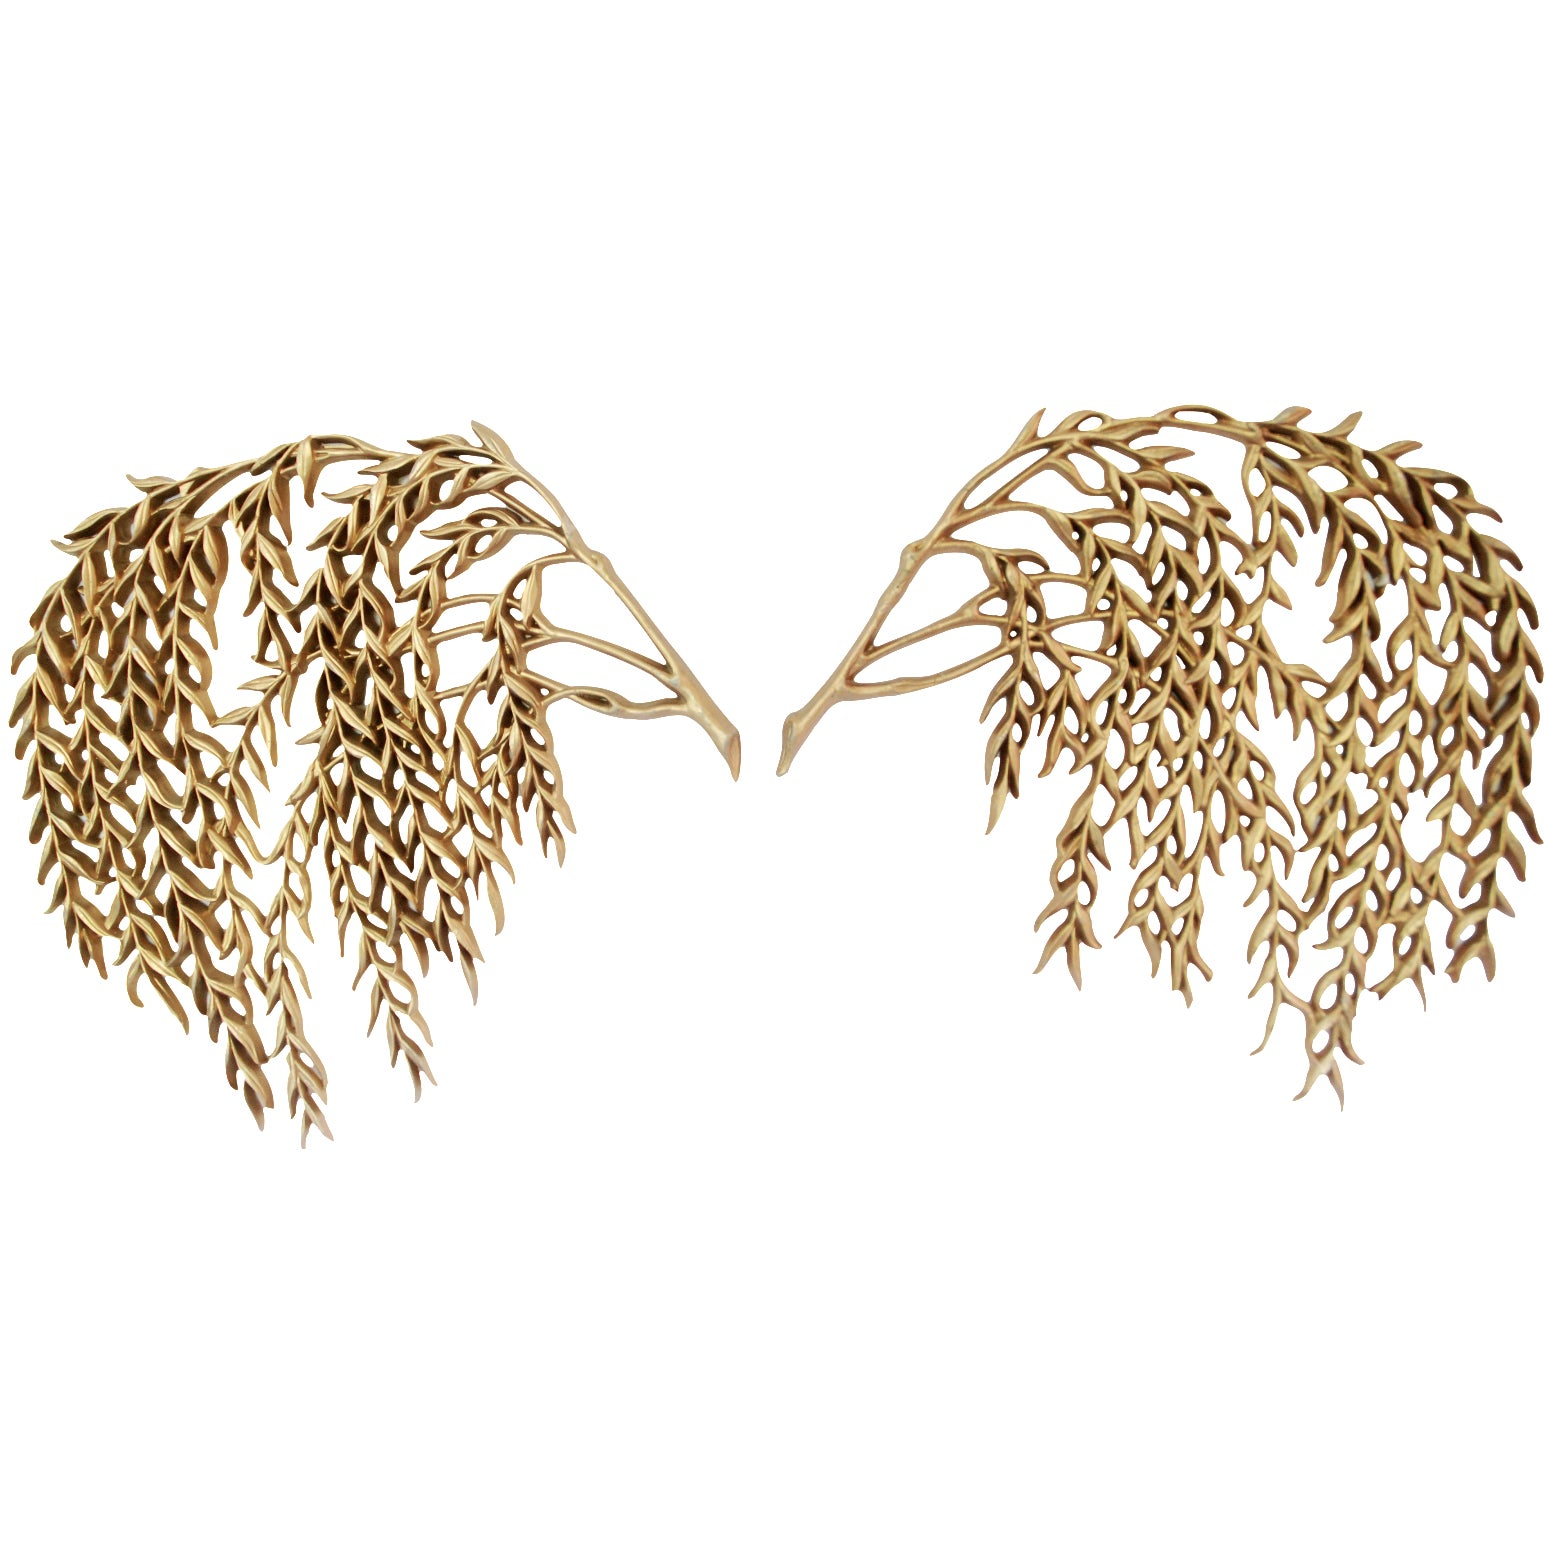 Vintage Burwood Weeping Willow Wall Decor Pair Chairish